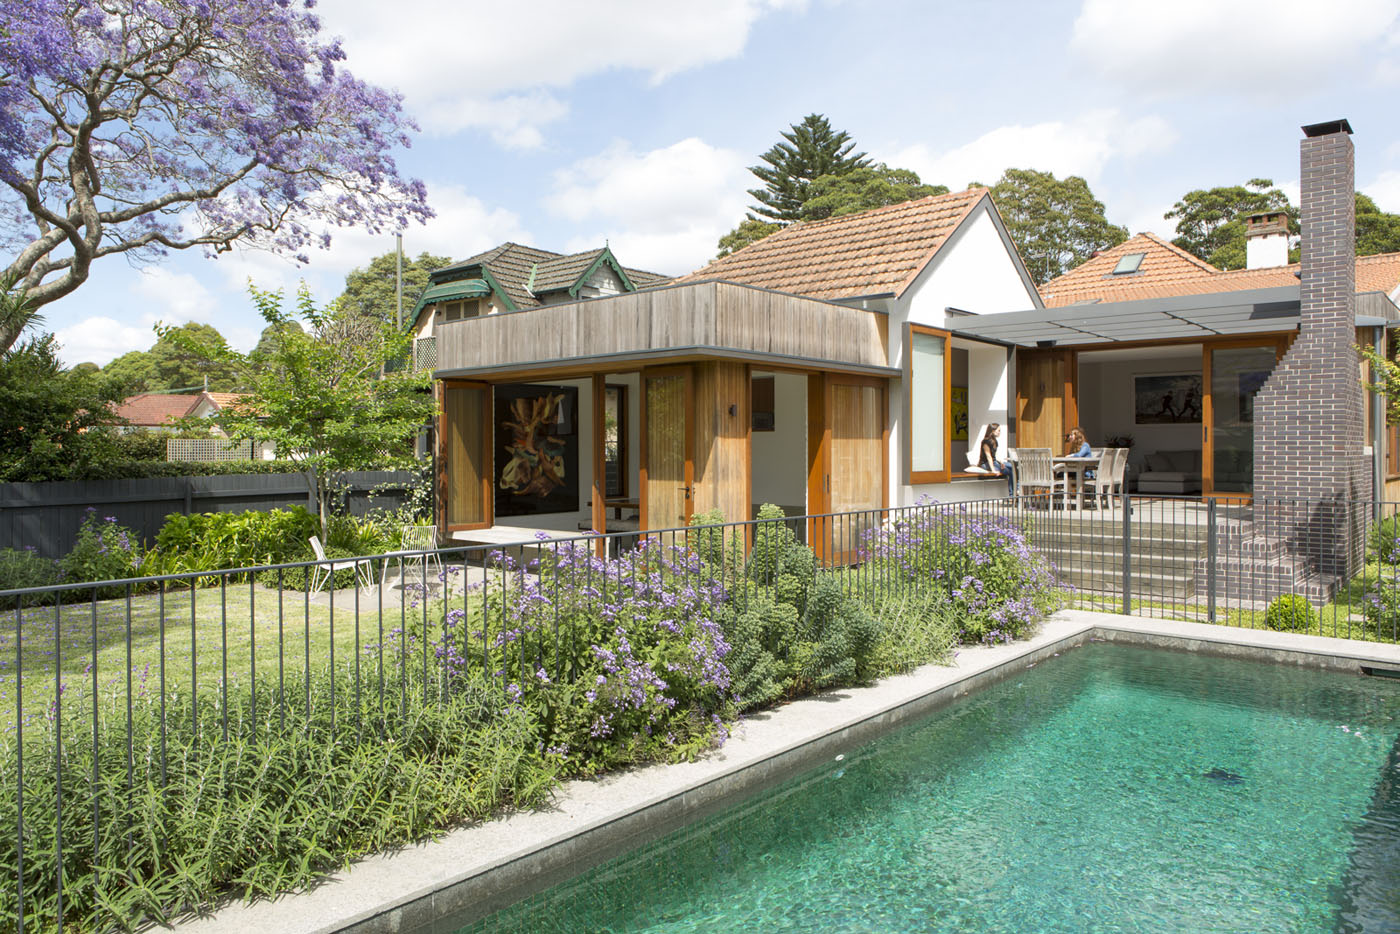 Denney House by Sam Crawford Architects, exterior poolside view.